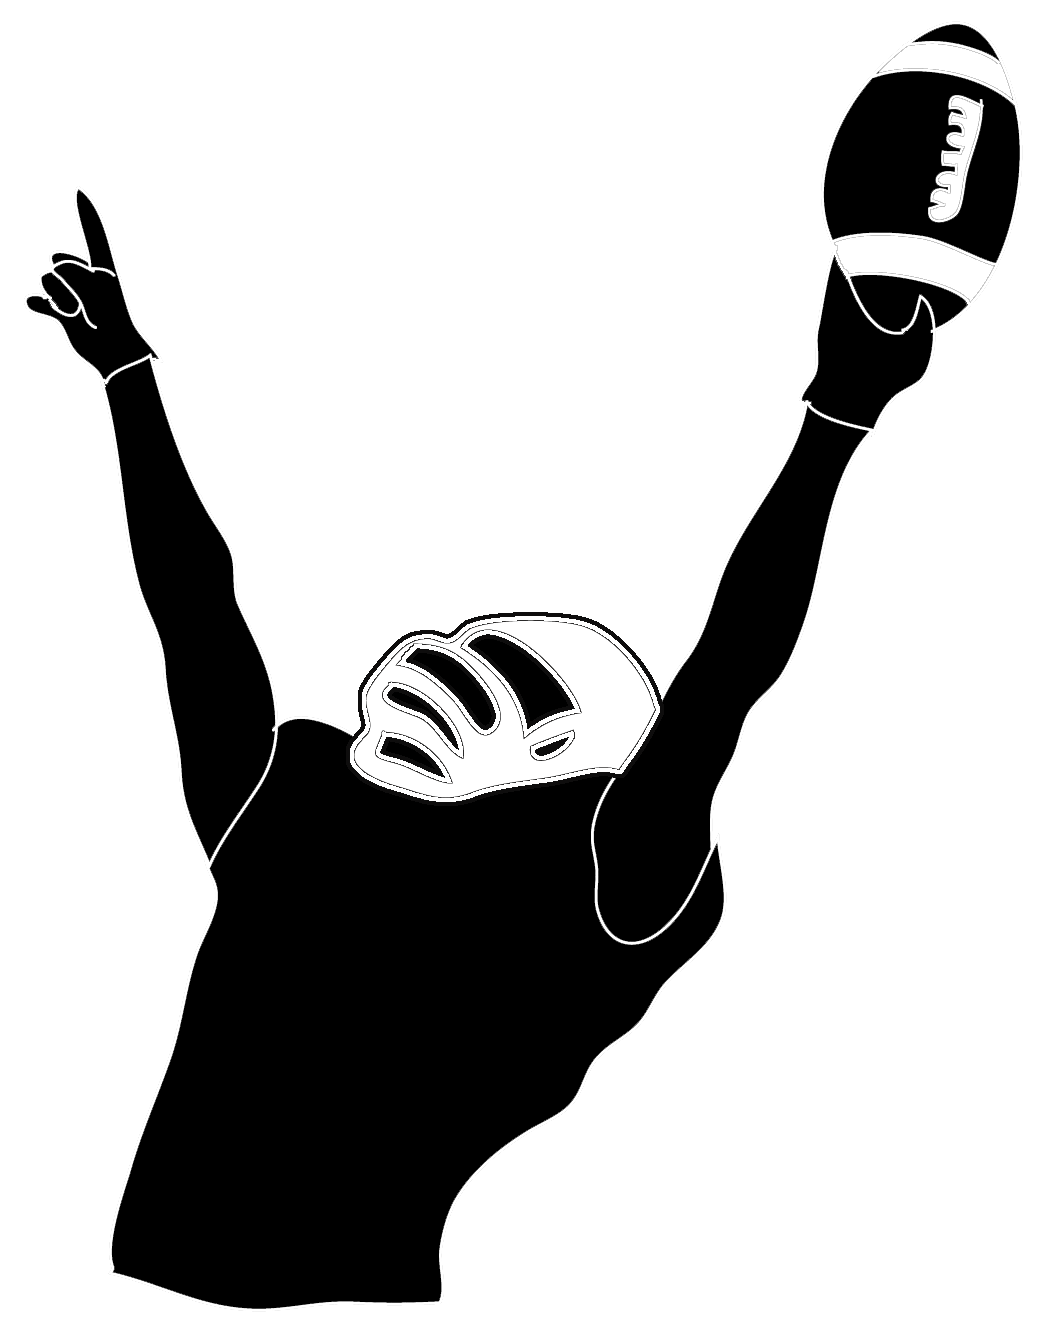 Football player quarterback clipart clip art black and white library victory-football-player | Vinyl projects | Pinterest | Football ... clip art black and white library